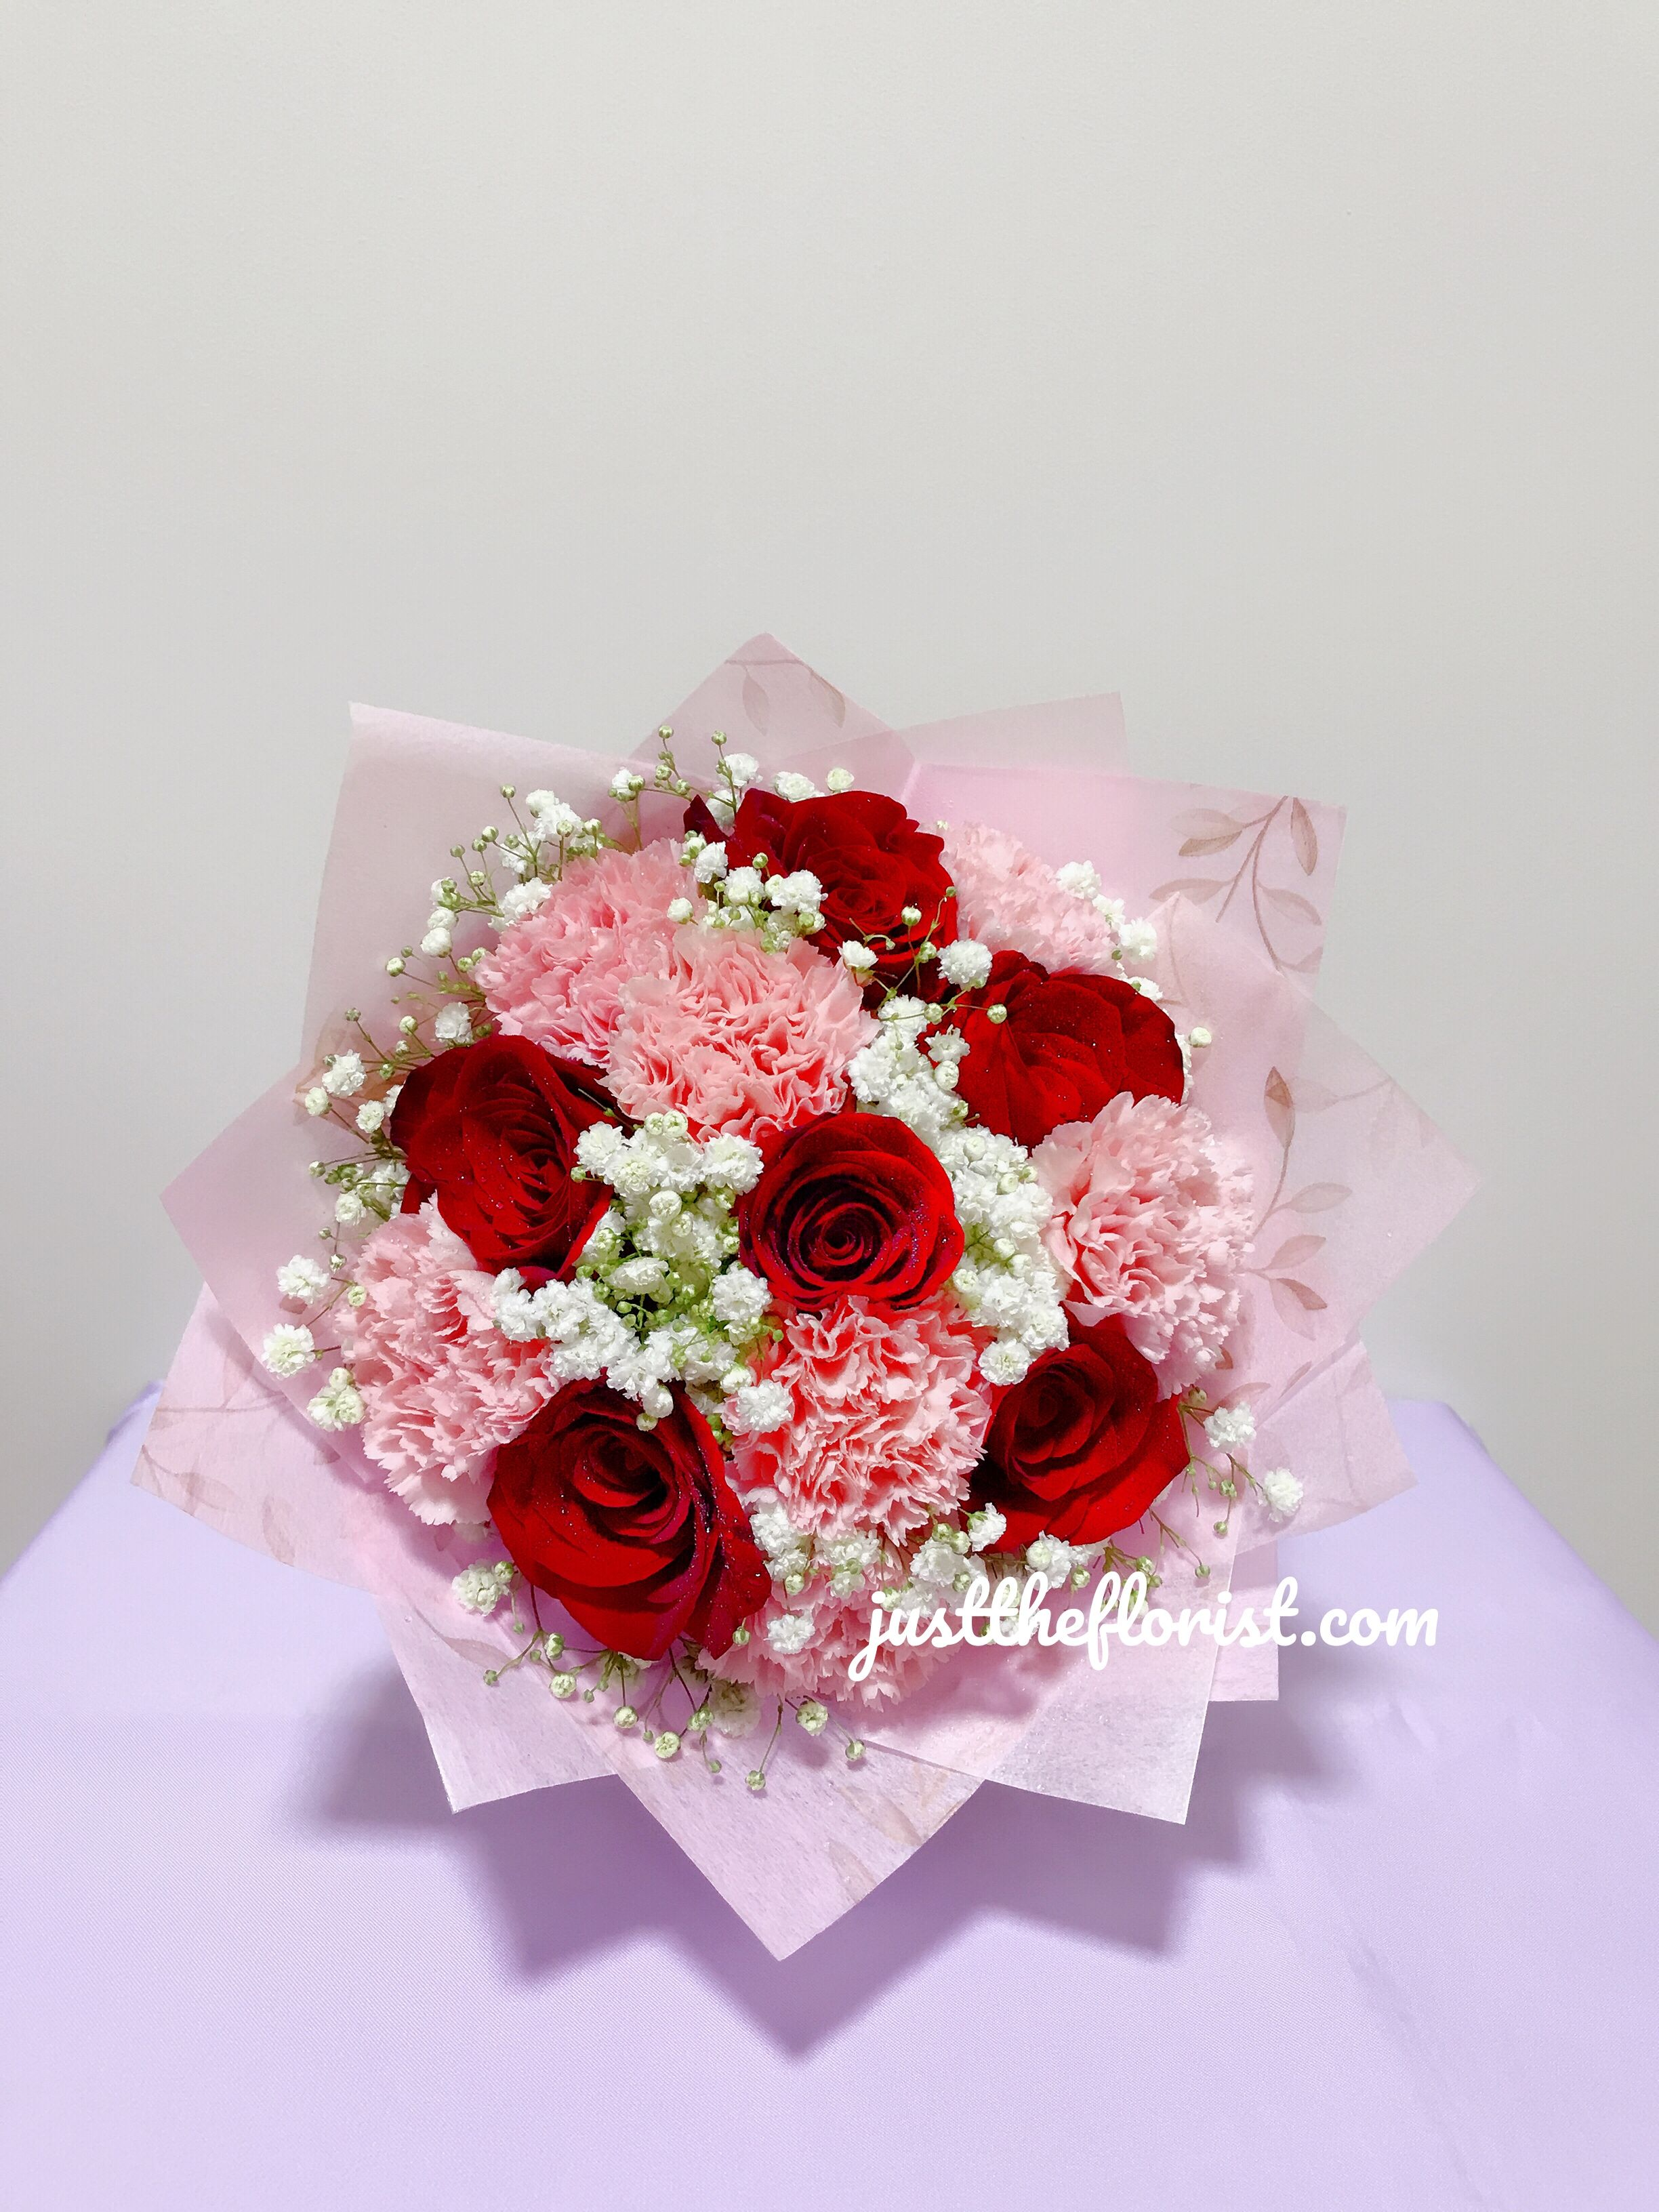 As We Approach Month Of May Introducing Our Brand New Mother S Day Series Sweet Pink Carnation With Red Roses Ready Fo Pink Carnations Red Roses Carnations